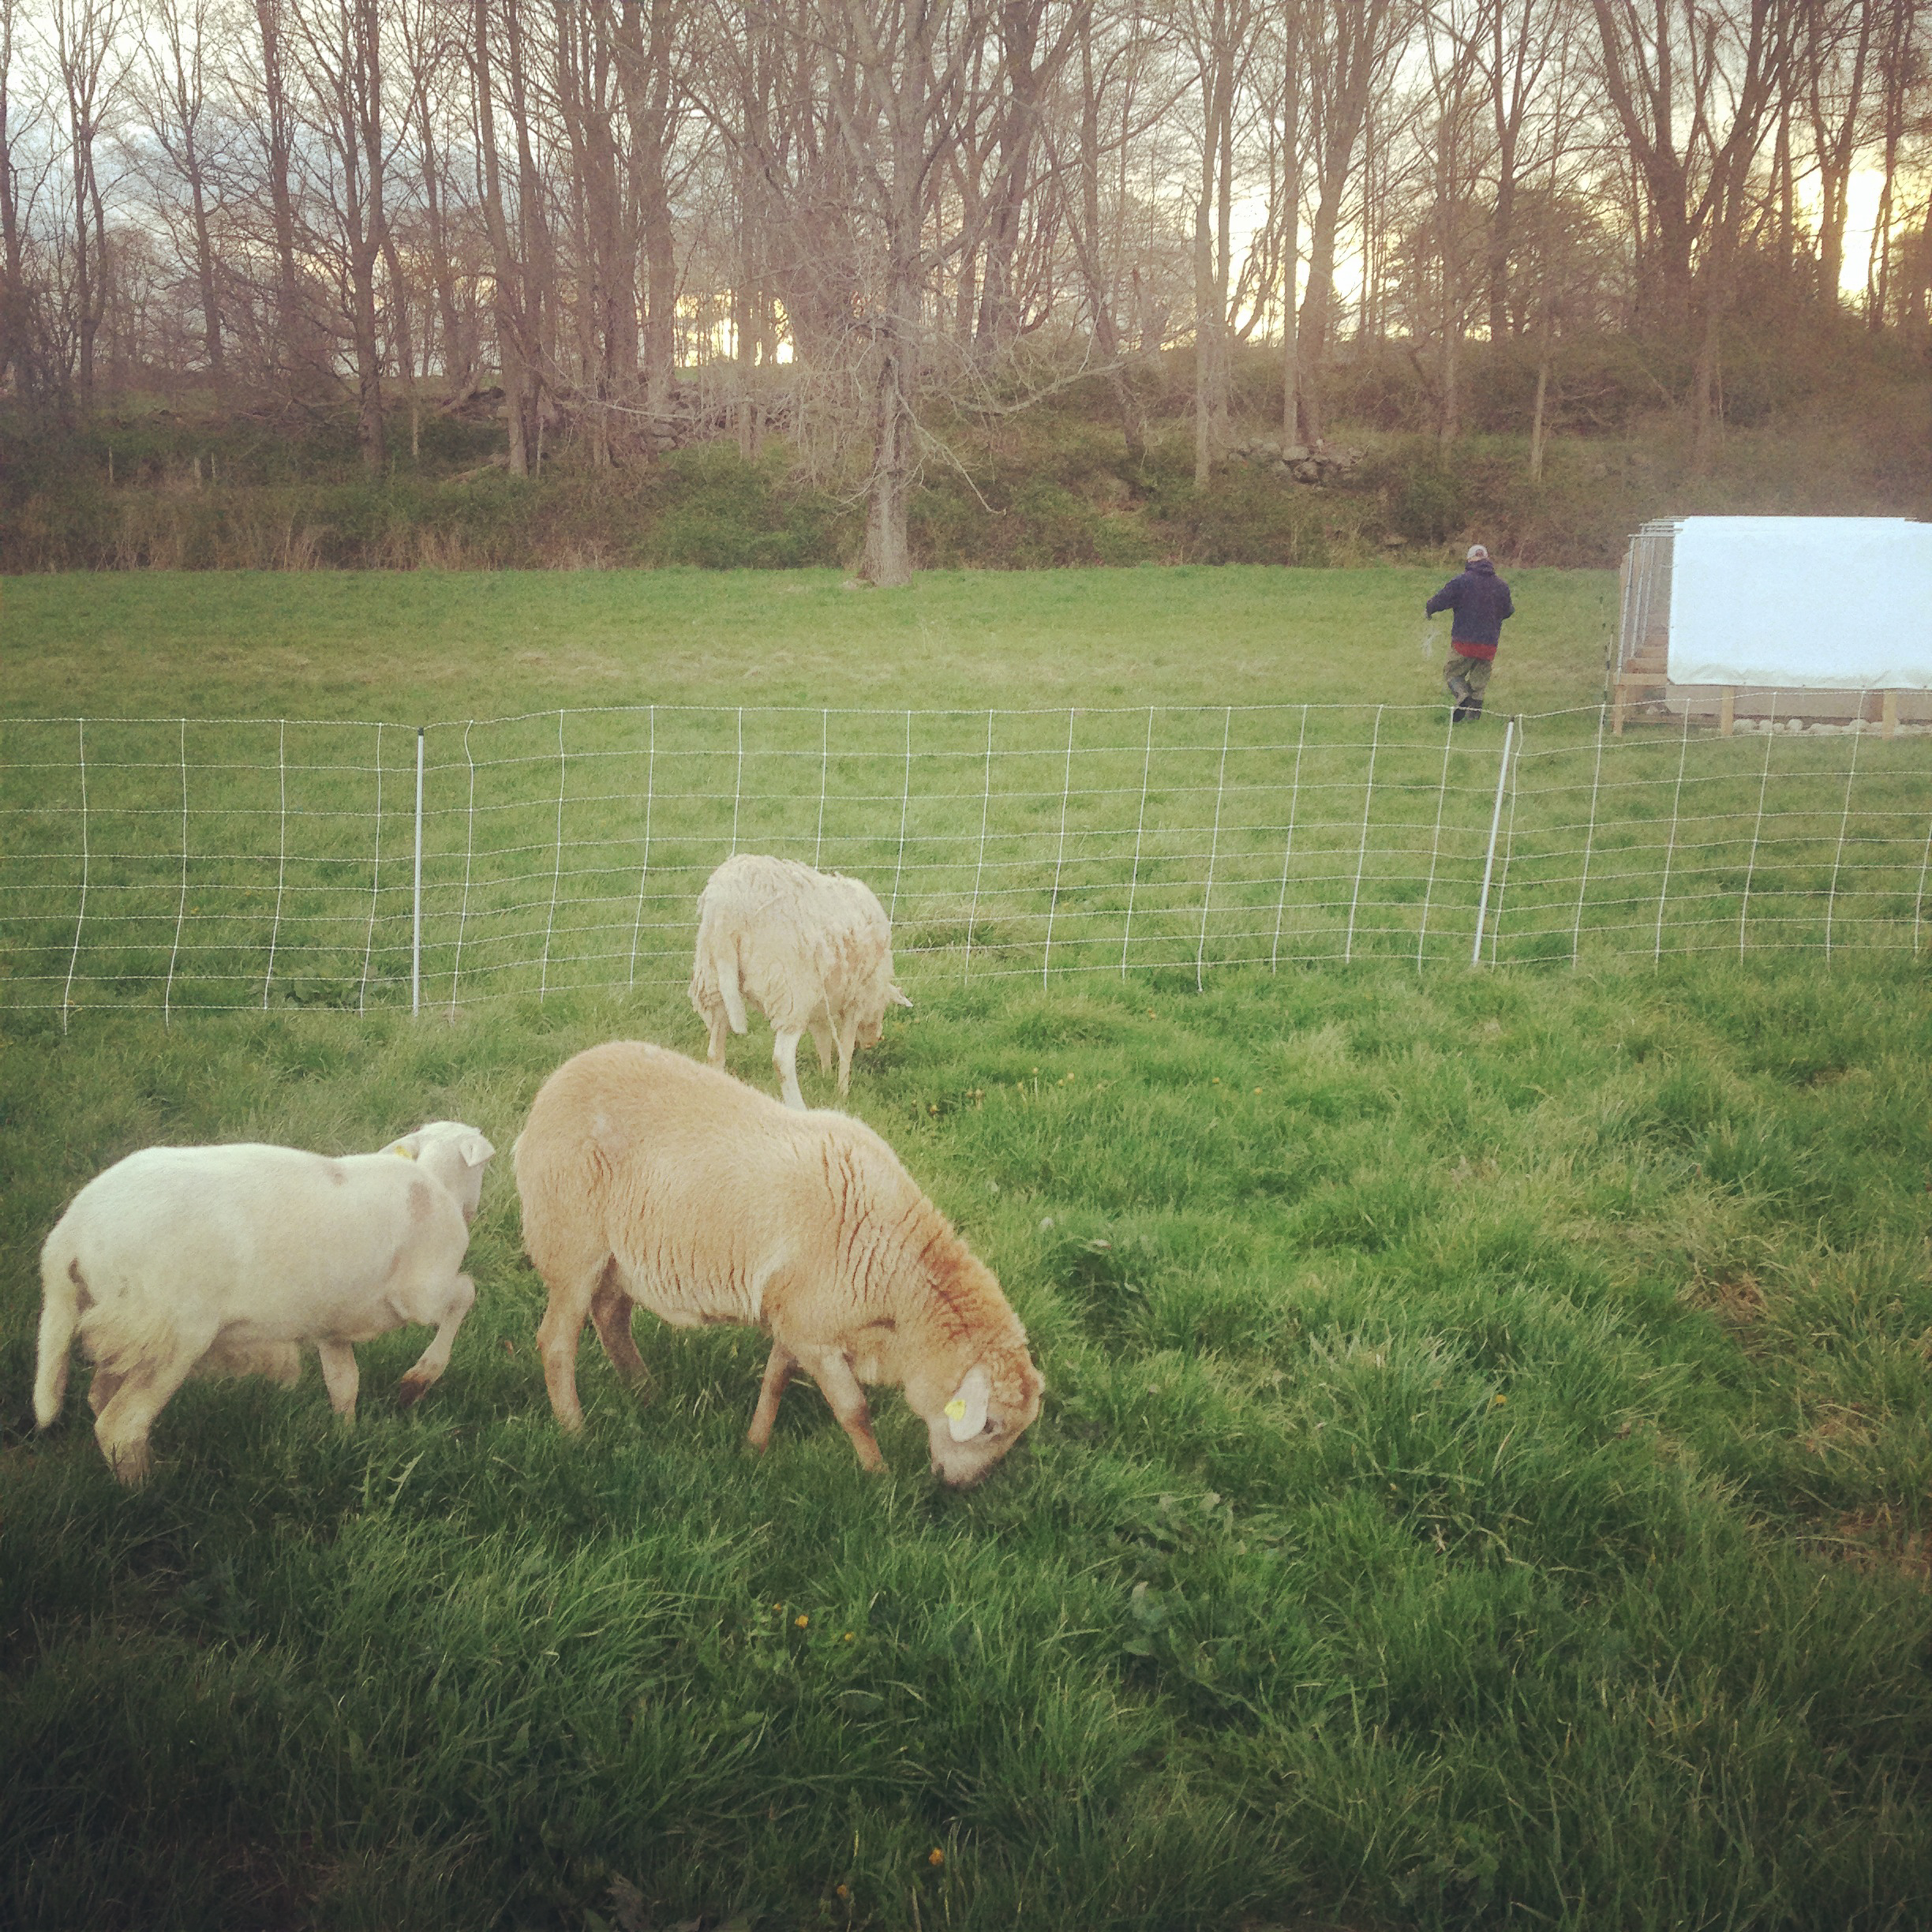 We rotated sheep in front of broilers and layers to keep grass mowed and provide us with a little mutton sausage.